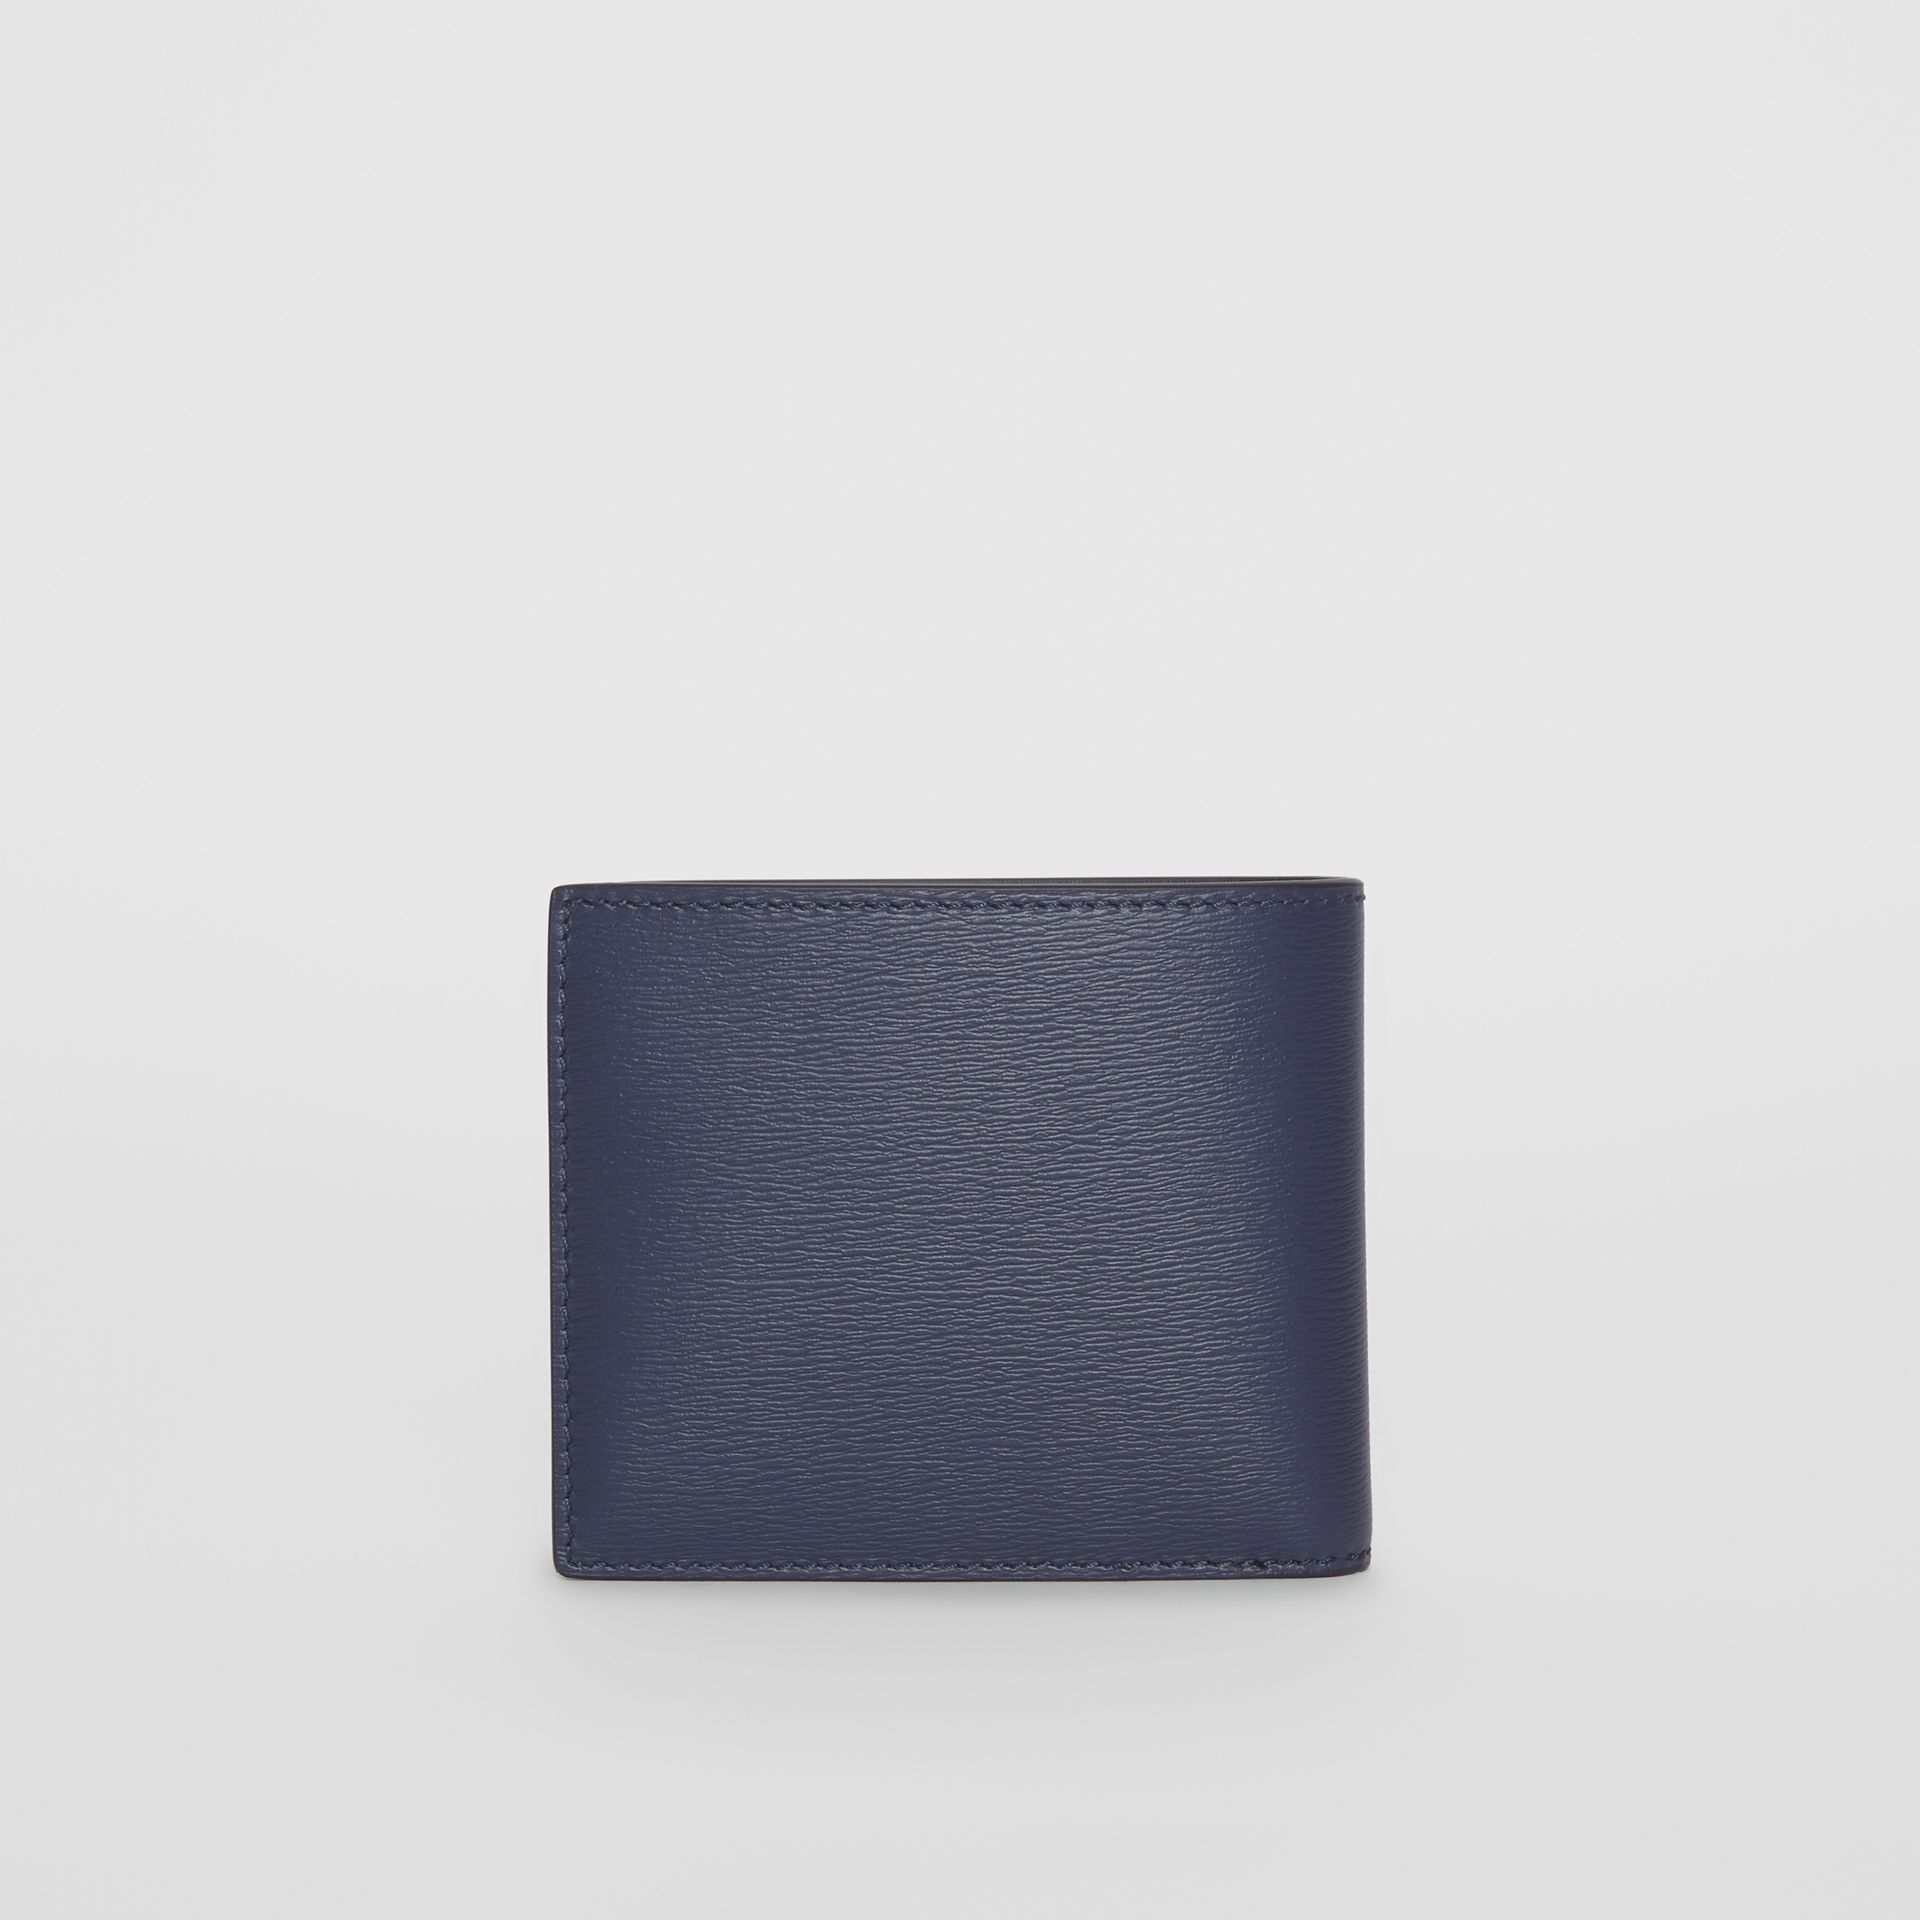 London Leather Bifold Wallet with ID Card Case in Navy - Men | Burberry - gallery image 4